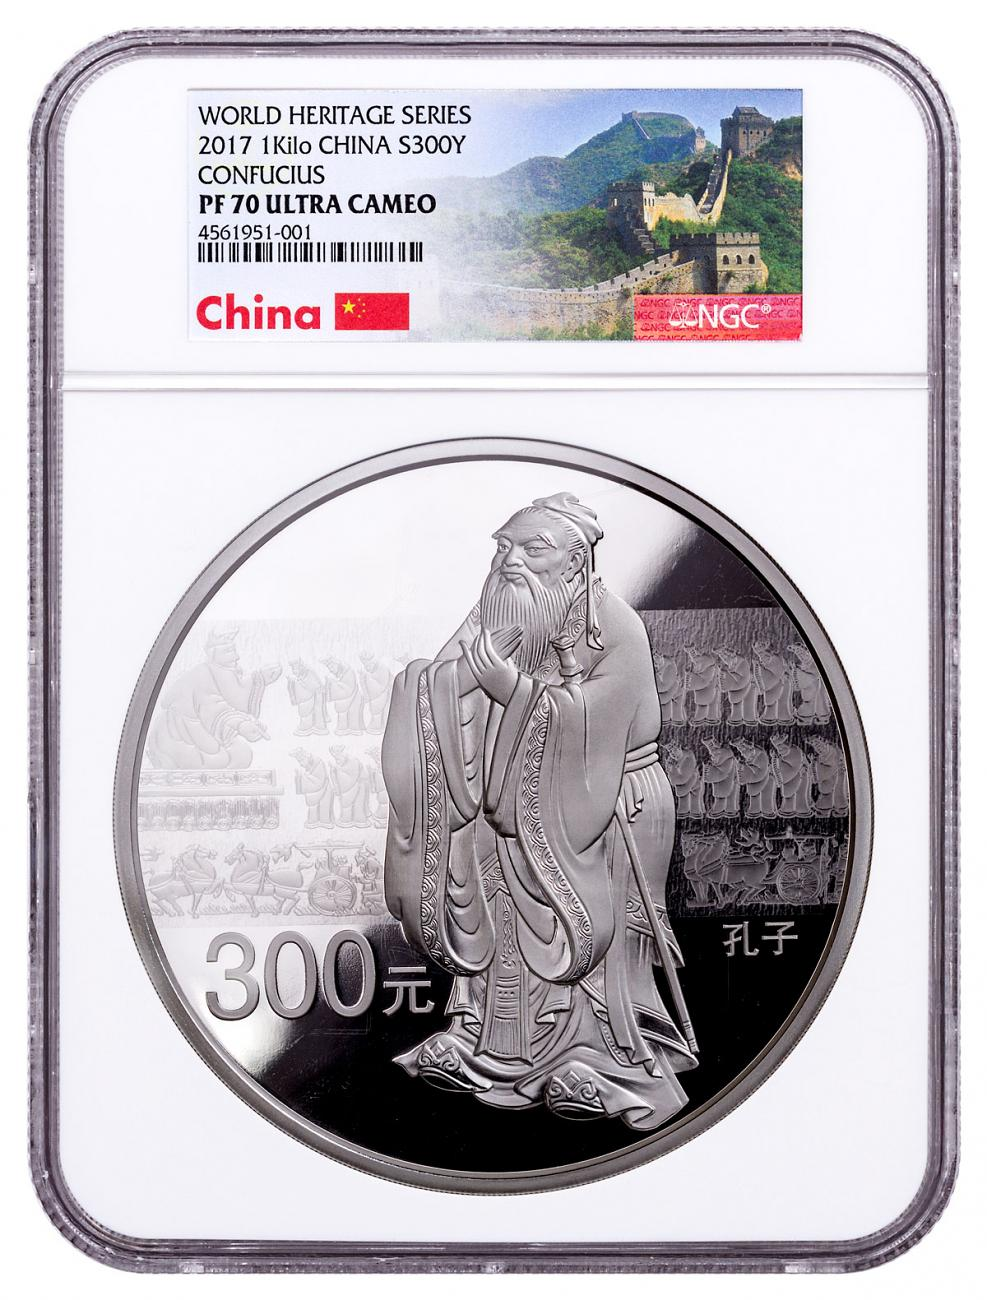 2017 China World Heritage Series - Portrait of Confucius 1 kilo Silver Proof ¥300 Coin NGC PF70 UC Exclusive Great Wall Label